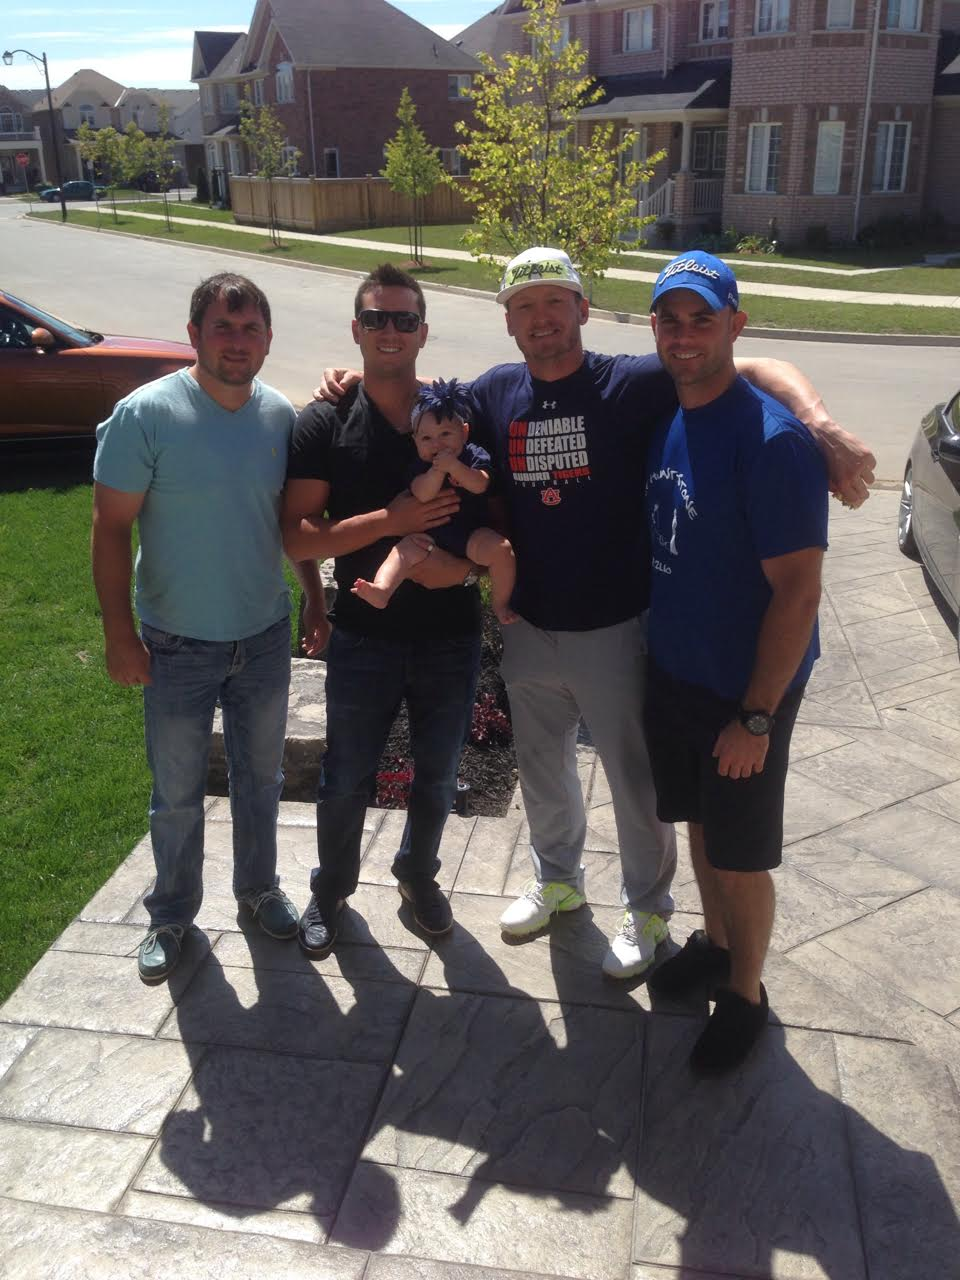 When the Oakland A's came to Toronto in 2013 and had an off day it was time for golf and 2-on-2 hoops game at Tyler Johnstone's place in Milton, From left to right Ryan Dallas, who played together with Johnstone at Purdue, Johnstone and his daughter Chole, Josh Donaldson and Jeff Roglic a former teammate of Johnstone's with the Ontario Blue Jays.